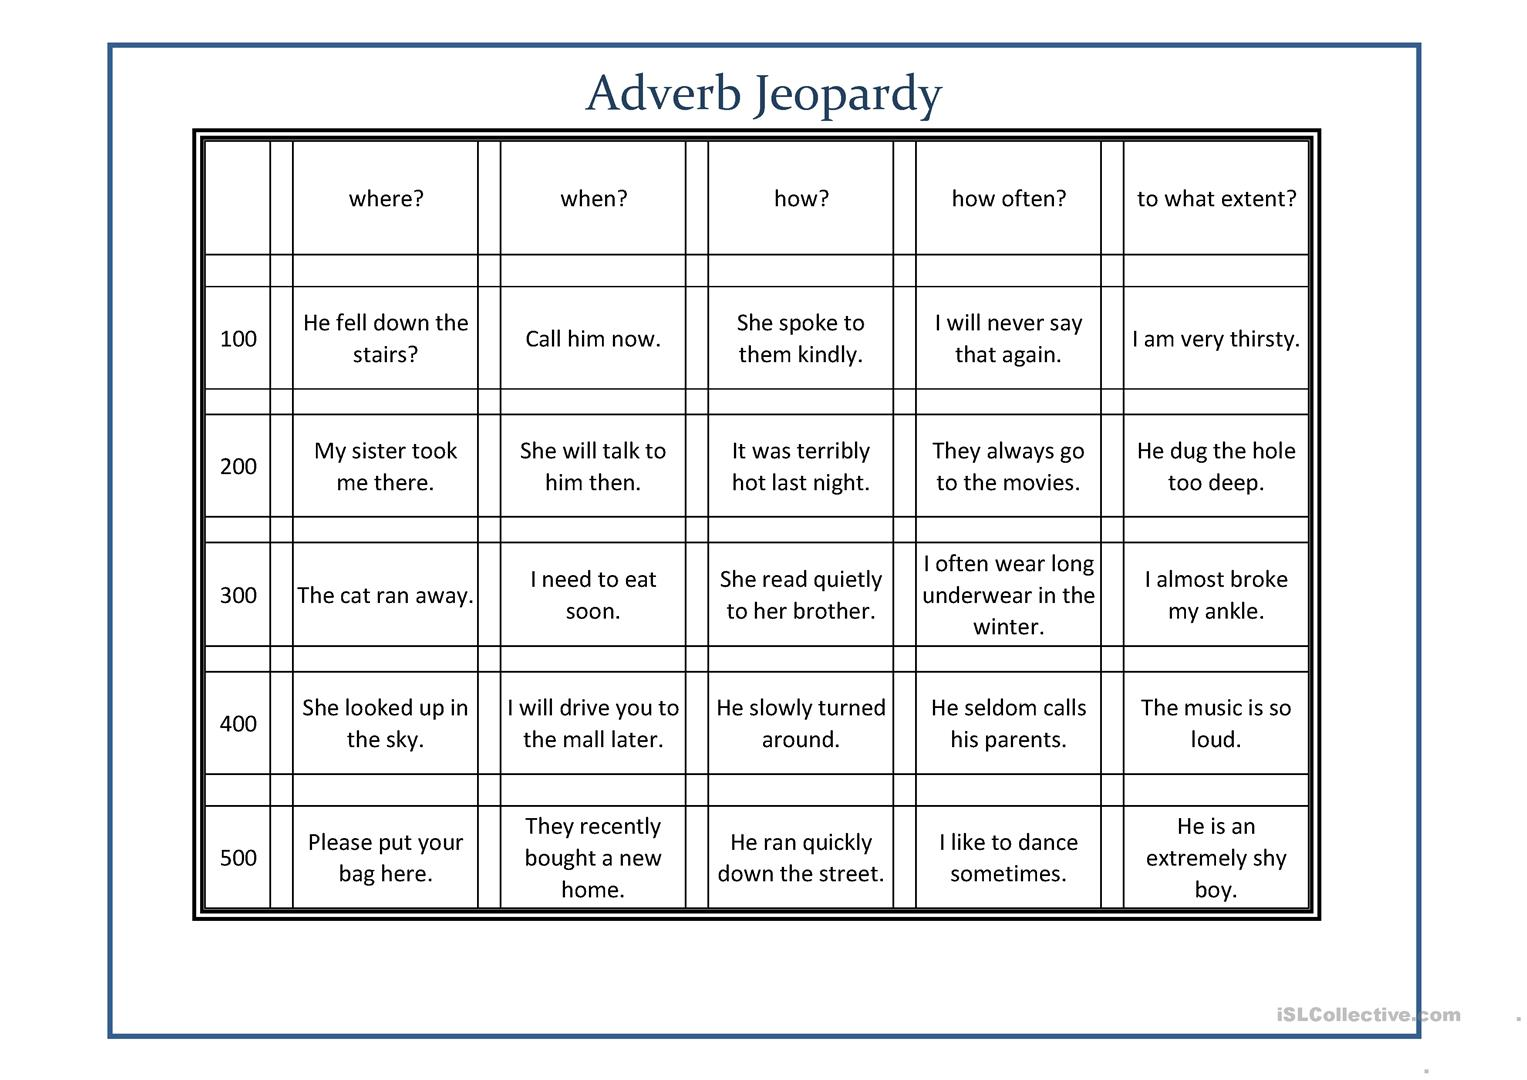 additionally 4th grade adverb worksheets   Download them and try to solve together with Adverb Worksheets for Elementary   Printable   Free   K5 Learning moreover Worksheet for adverbs   Download them and try to solve as well Adverbs Worksheet   Fronteirastral besides KateHo » Adverbs List For Kids   Free Printables Worksheet adverbs additionally Adverbs Worksheet   Winonarasheed moreover Worksheets For Adverbs Of Manner   worksheet ex le furthermore Frequency Adverbs worksheet   Free ESL printable worksheets made by moreover Questioning Adverbs   Free  Printable Adverb Worksheets moreover 4th grade adverb worksheets  843317   Myscres further Free Printable Worksheet Homophones Save Free Printable Worksheets moreover  further Adverb Worksheets   Mychaume moreover Amazing Adverb Jeopardy Worksheet Free Esl Printable Worksheets Made also . on free printable worksheets on adverbs